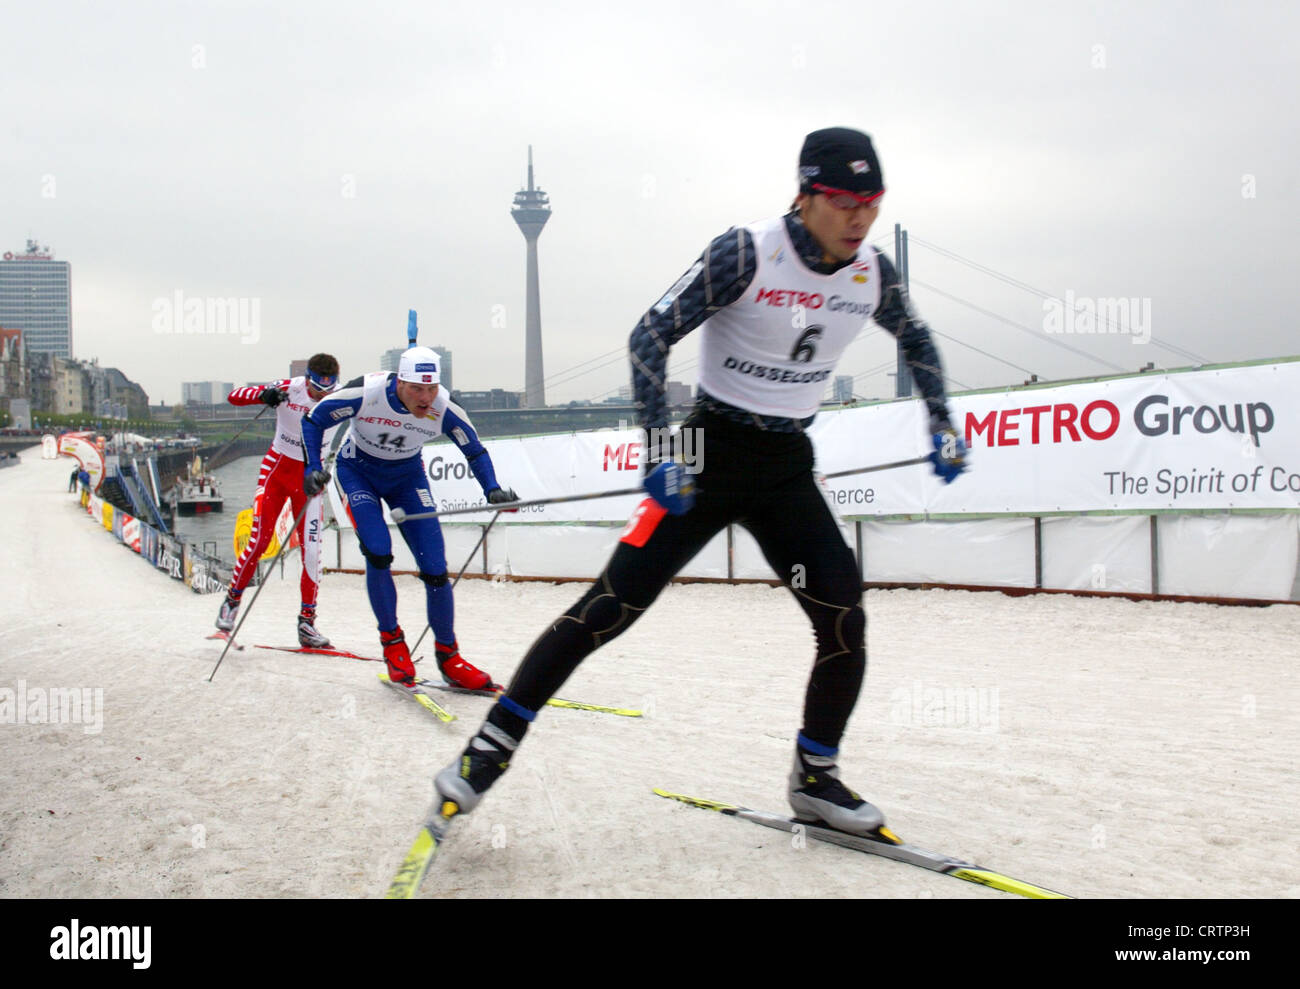 FIS Cross-Country World Cup sprint in Duesseldorf - Stock Image